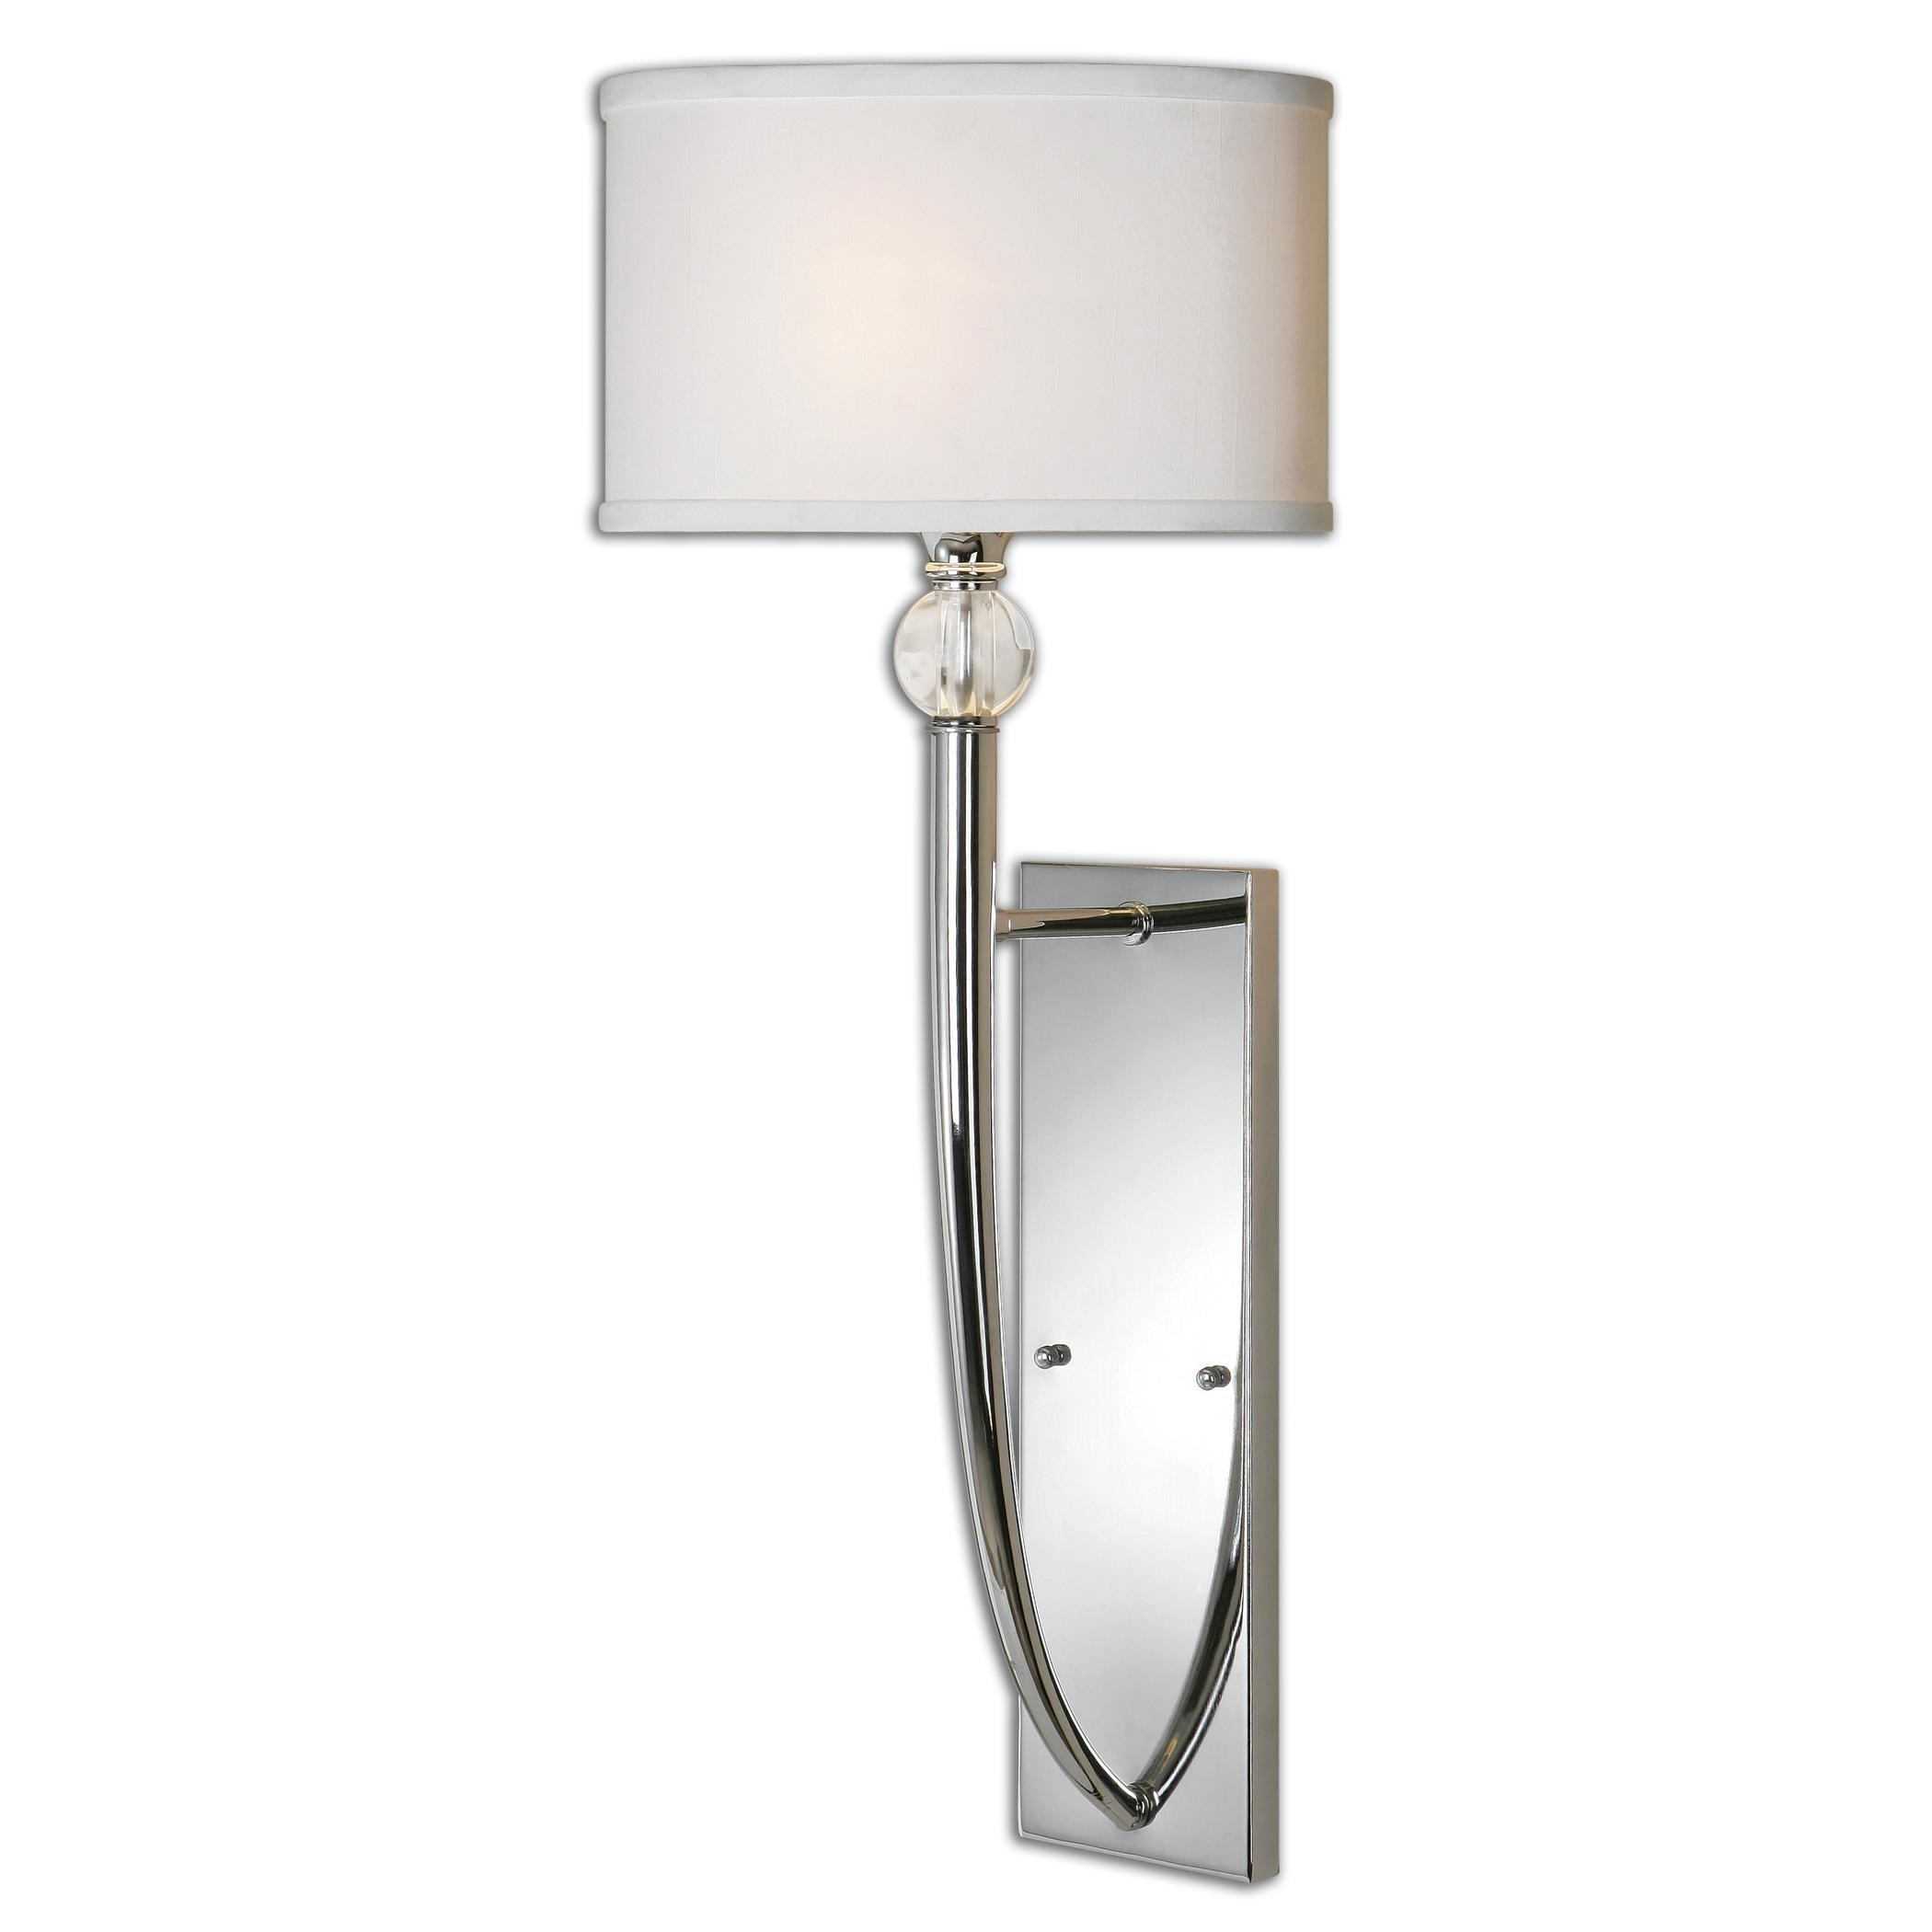 Superbe Uttermost Lighting FixturesUttermost Vanalen 1 Light Chrome Wall Sconce ...